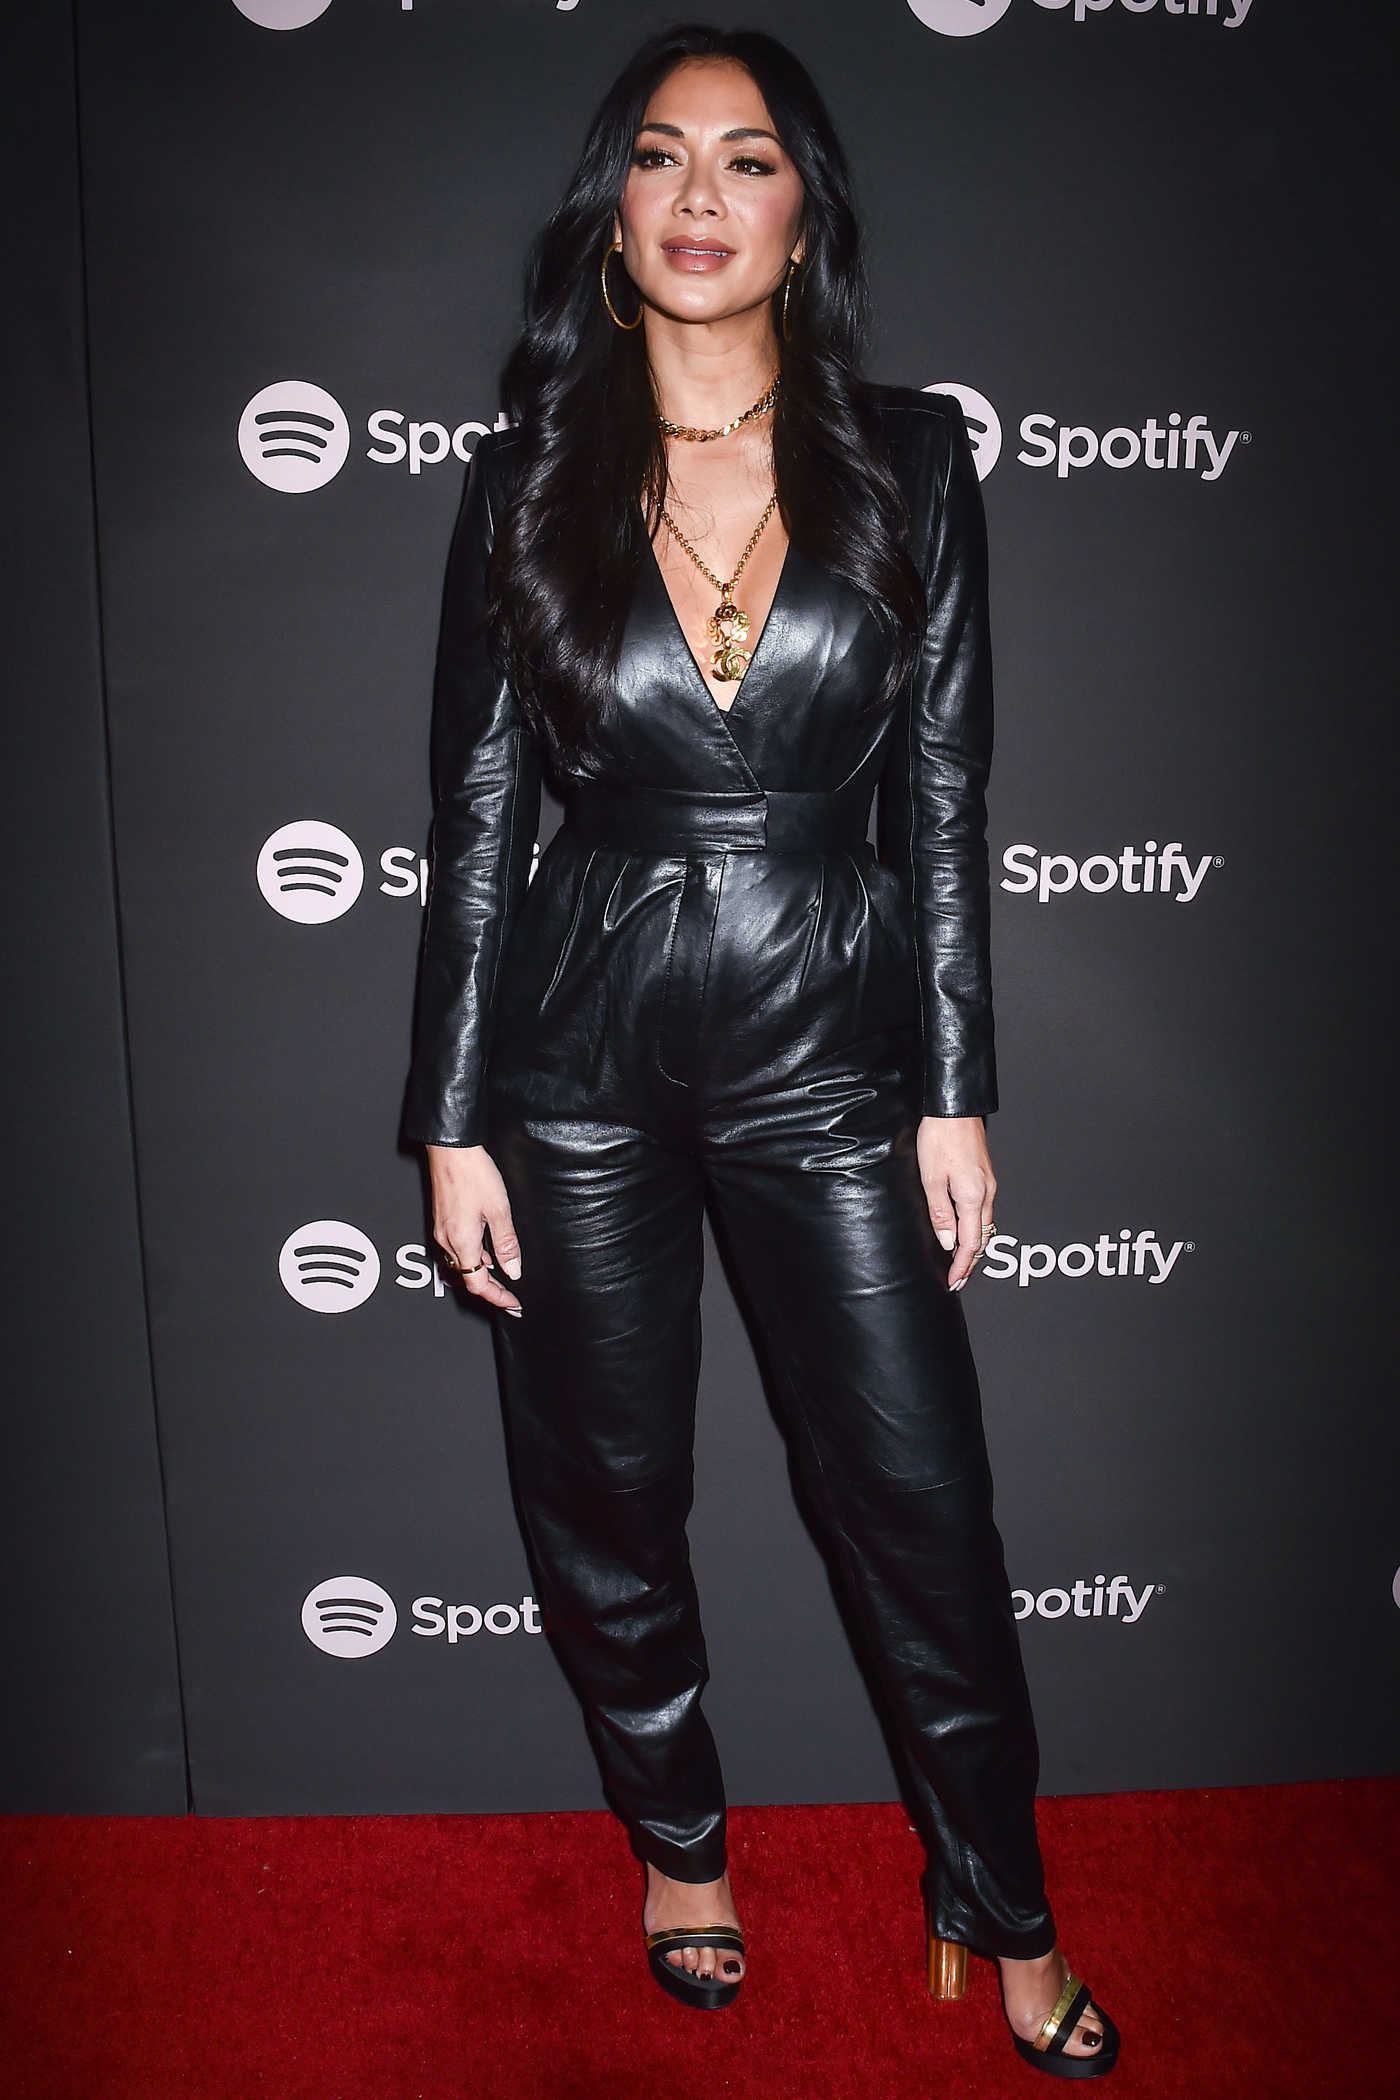 Nicole Scherzinger Attends Spotify Best New Artist 2019 Event in Los Angeles 02/07/2019